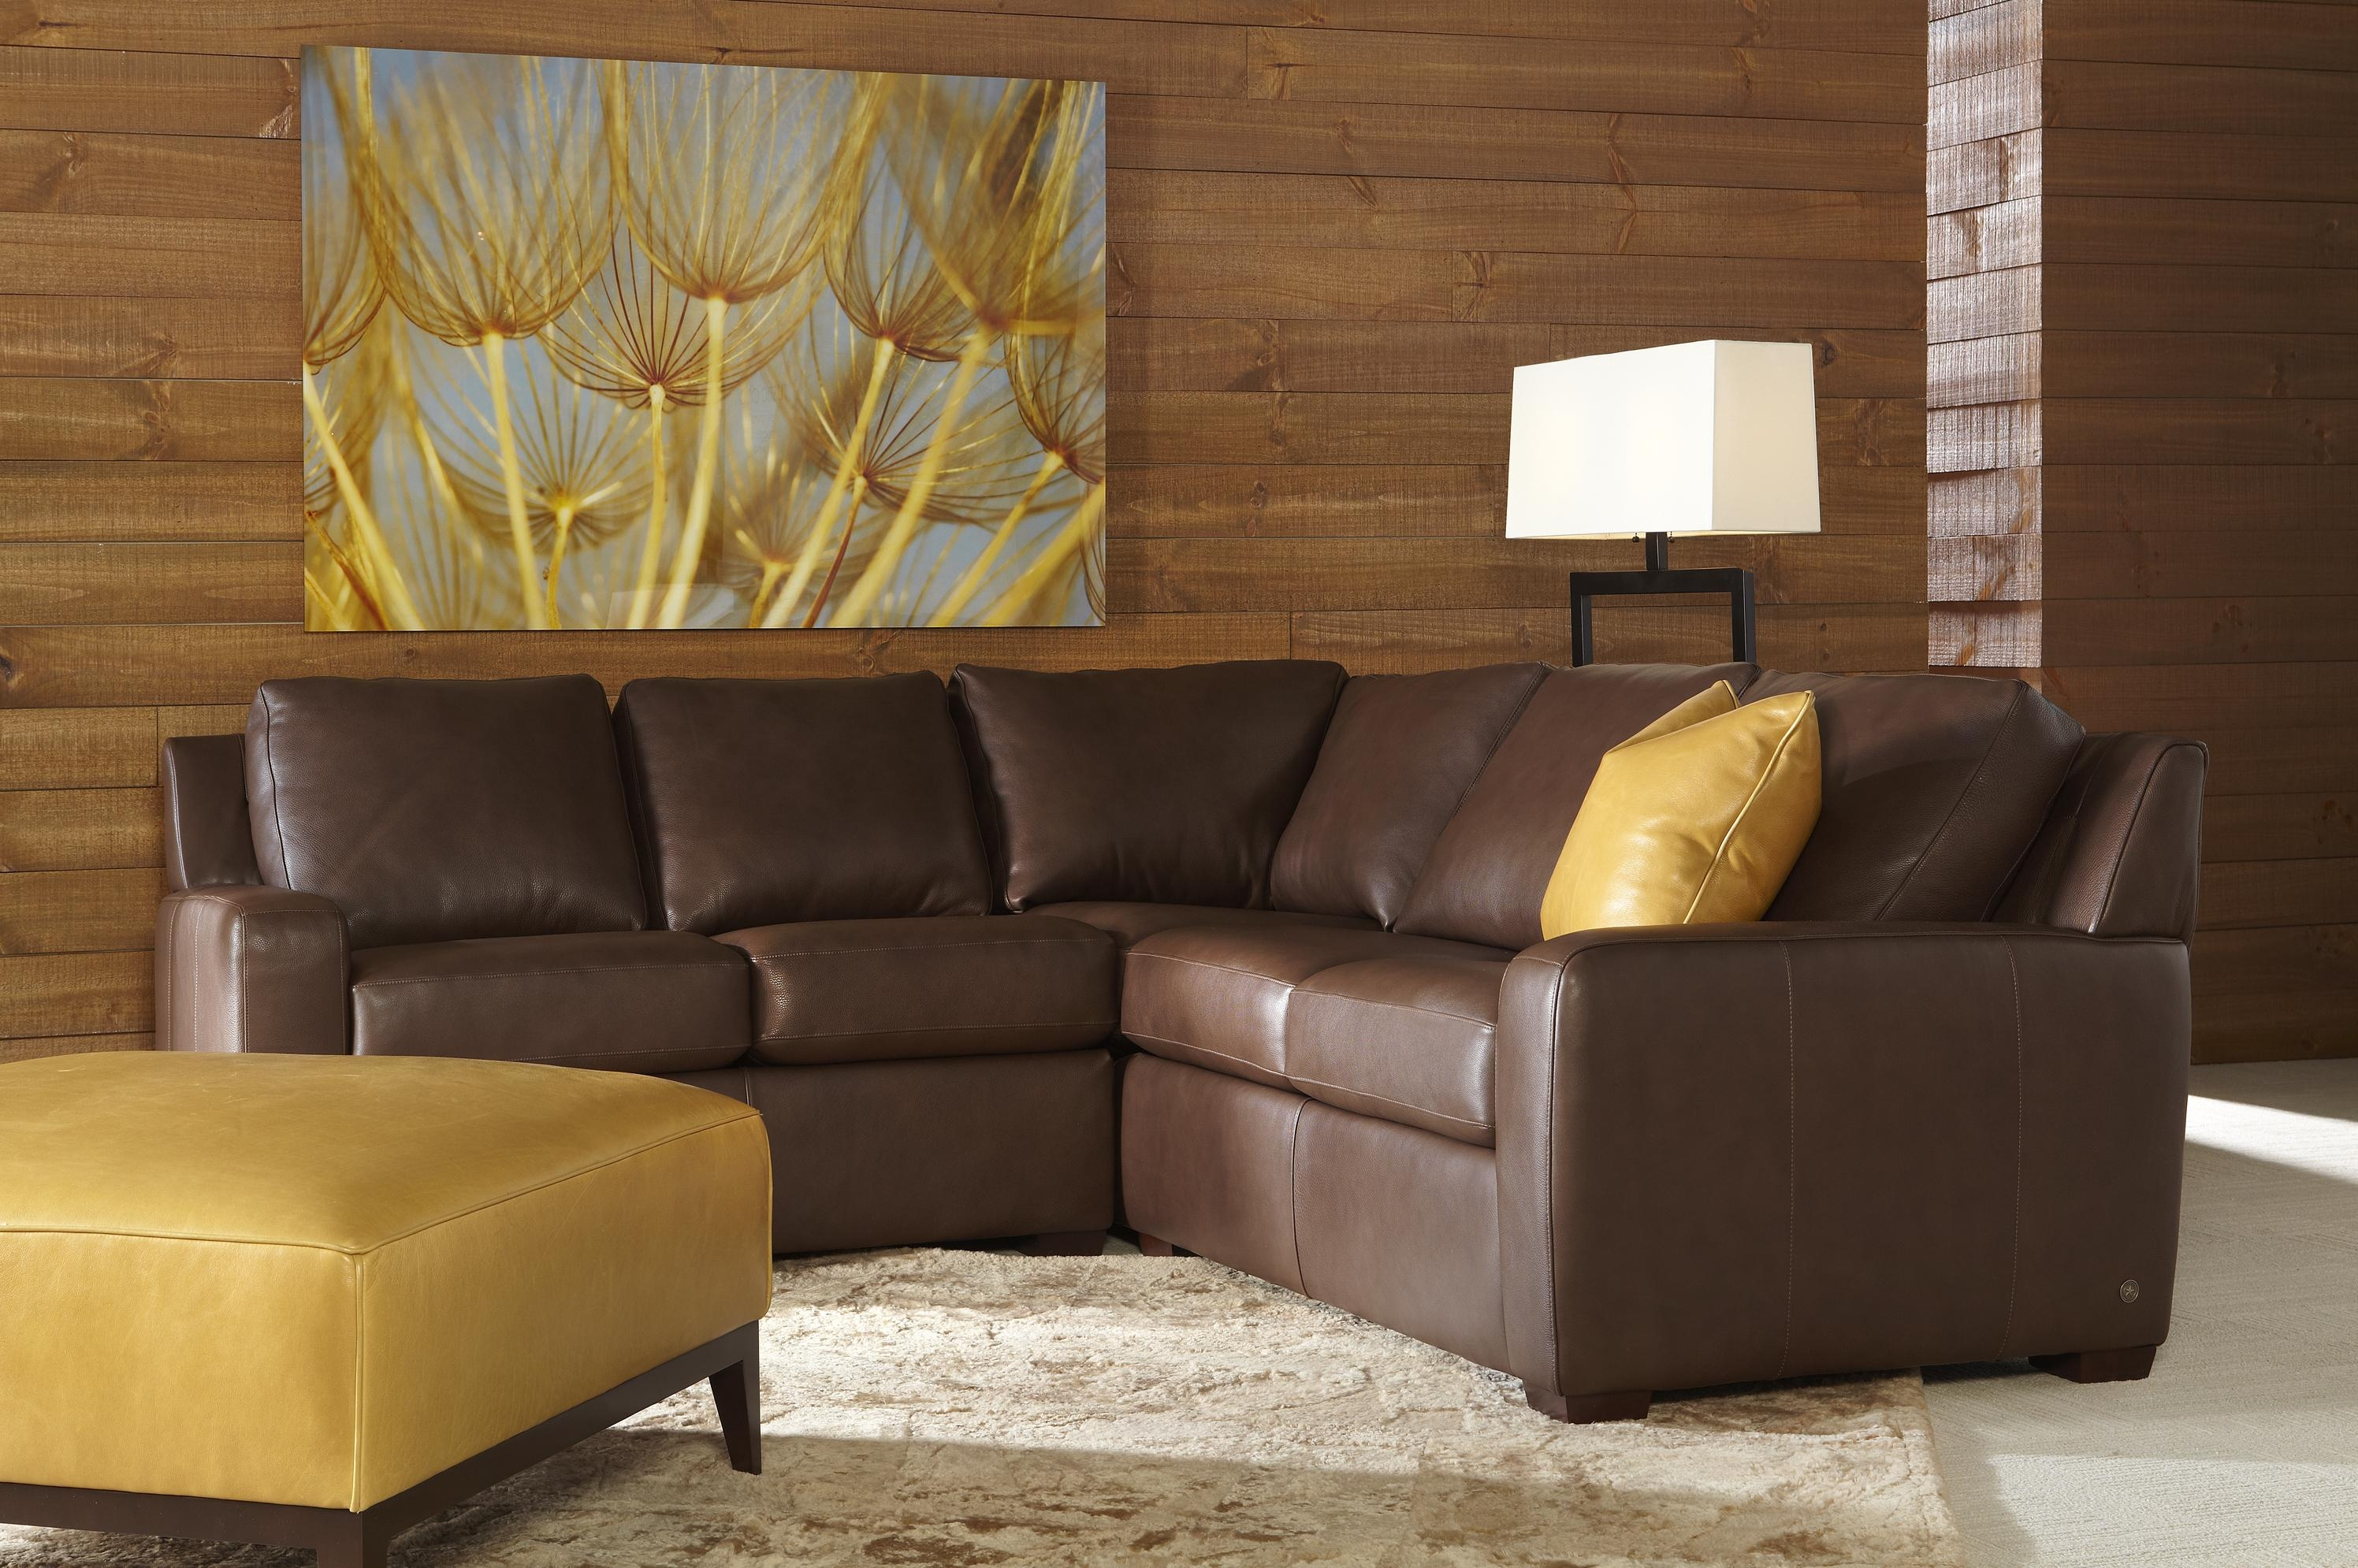 Sectional Sofas – Elegance And Style Tailored Just For Youand For American Sofa Beds (Image 18 of 22)